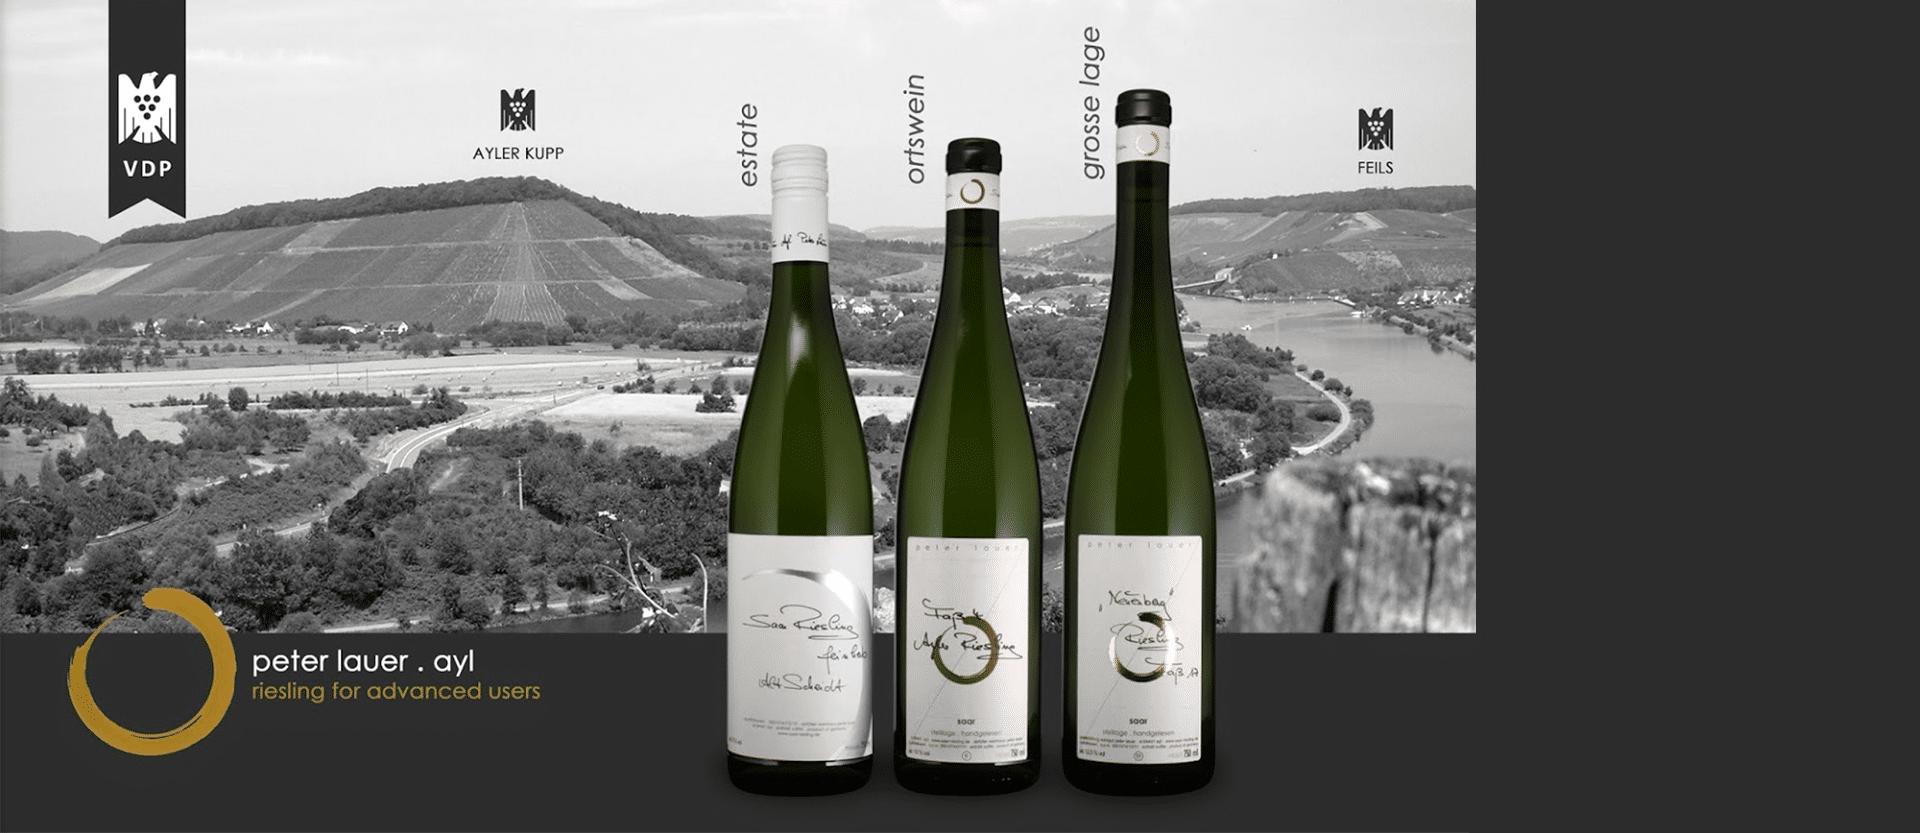 Three bottles of wine from Peter Lauer